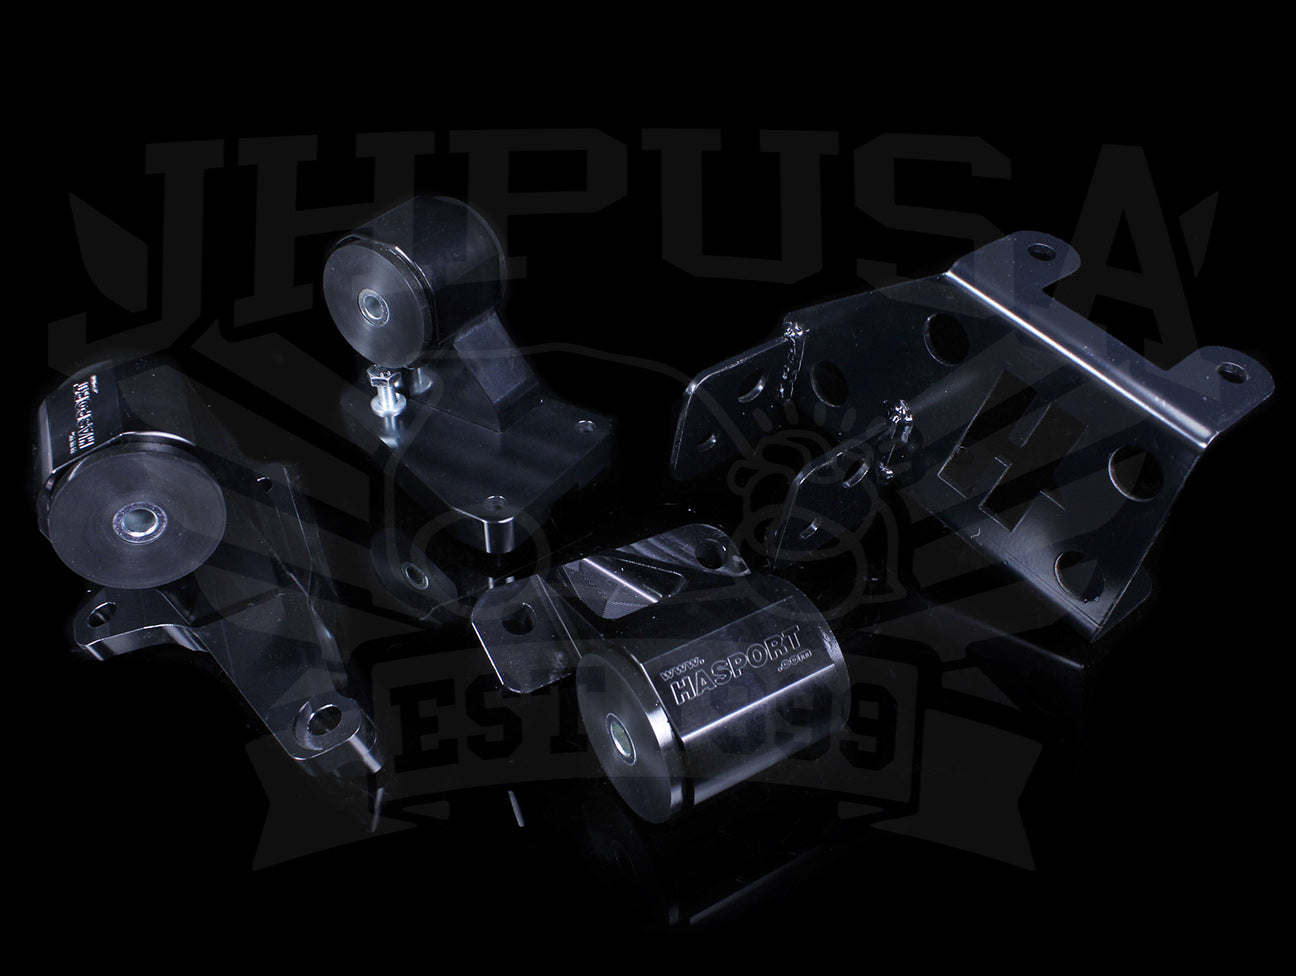 Hasport Billet Black H-series Engine Mount Kit - 92-95 Civic / 94-01 Integra